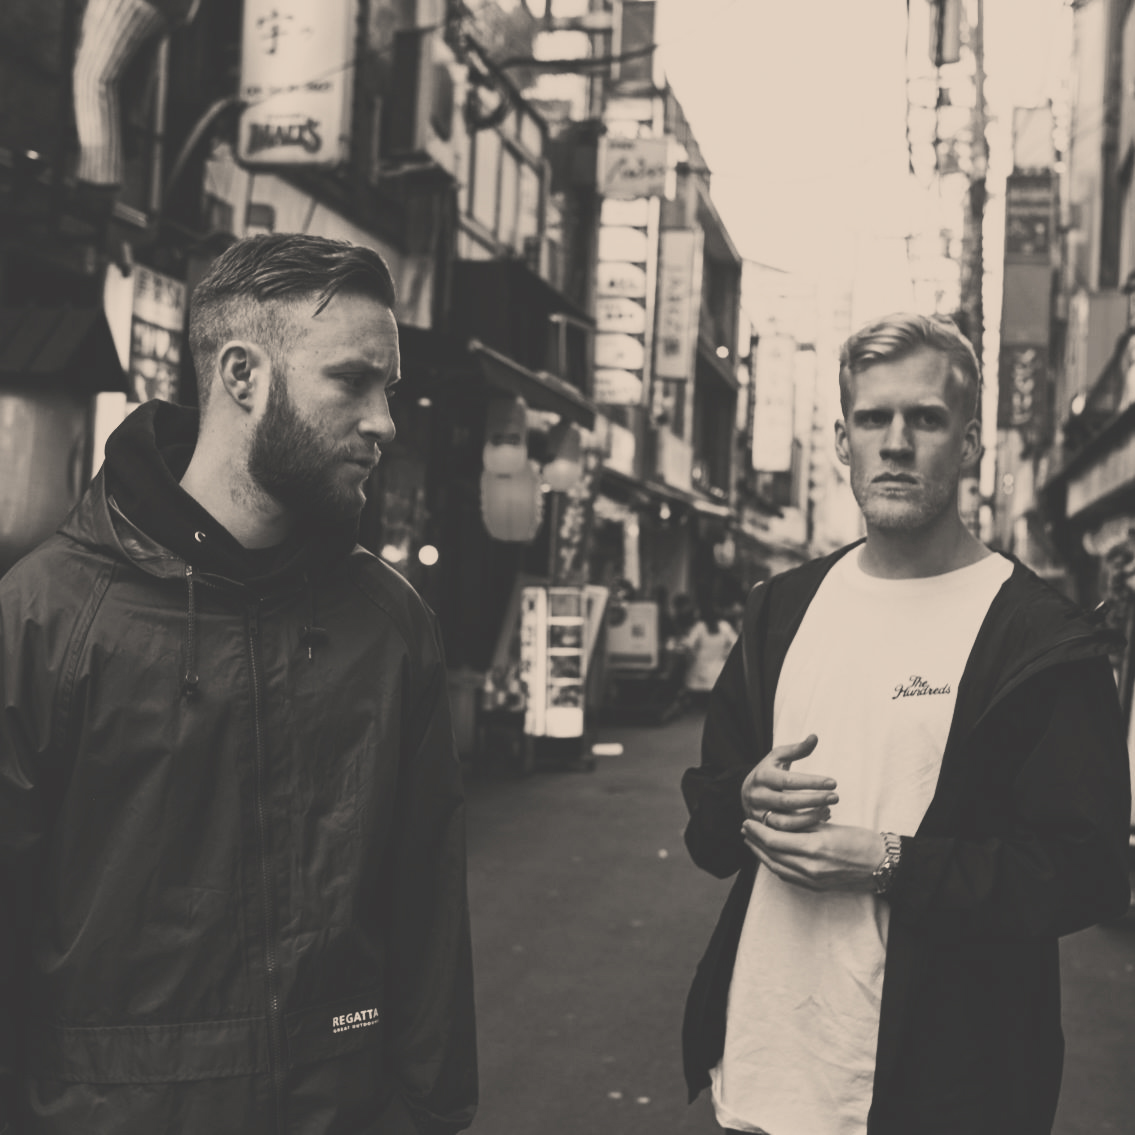 Snakehips - Rapidly making their name with Hype Machine chart-topping remixes for Banks, The Weeknd, Bondax and Wild Belle, platinum-selling UK duo Snakehips (Oliver Lee and James Carter) have garnered an ever growing reputation for their unique signature sound; a sensual, contemporary take on old school R&B, influenced by 90s hip-hop throwbacks and 1970s string samples.Collective Minds brought Snakehips to Singapore to shake some hips.